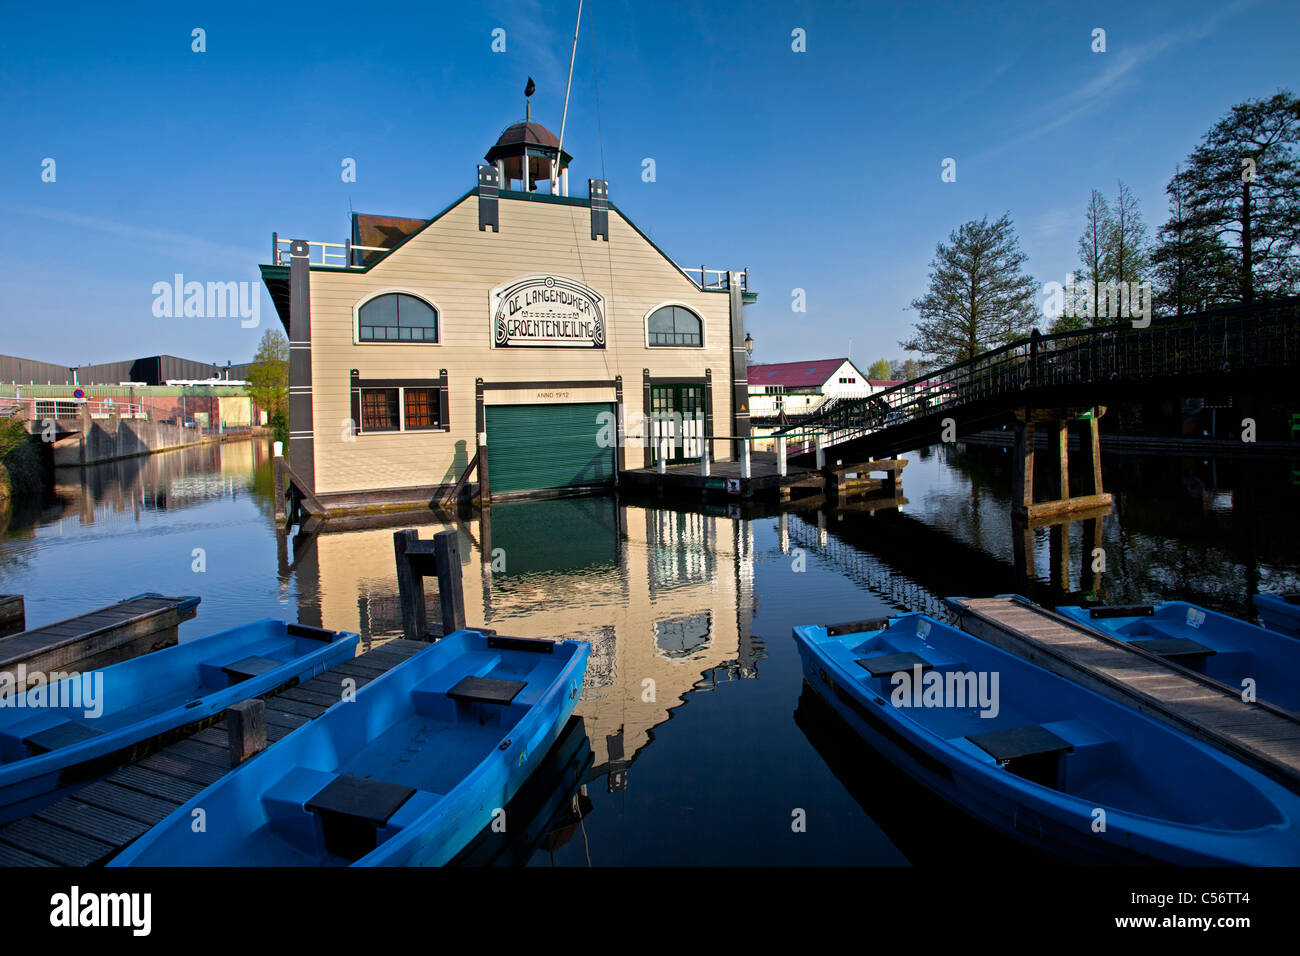 The Netherlands, Broek op Langedijk, Former auction halls for vegetables, now museum. - Stock Image